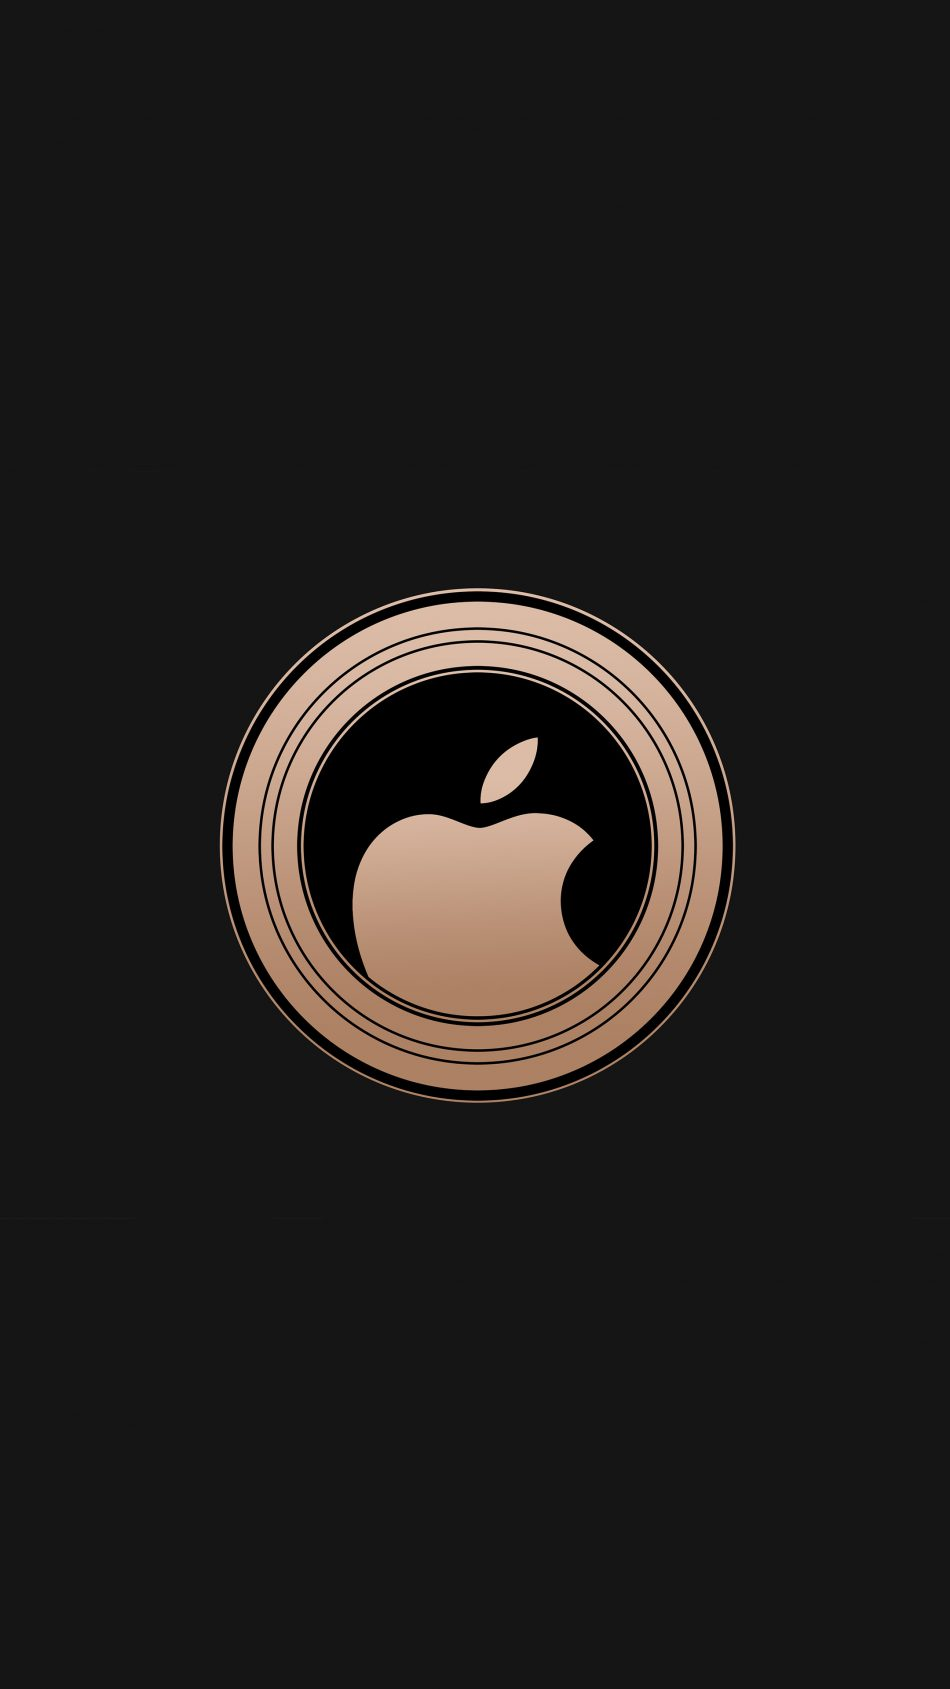 Ultra Hd Apple Wallpaper 4k